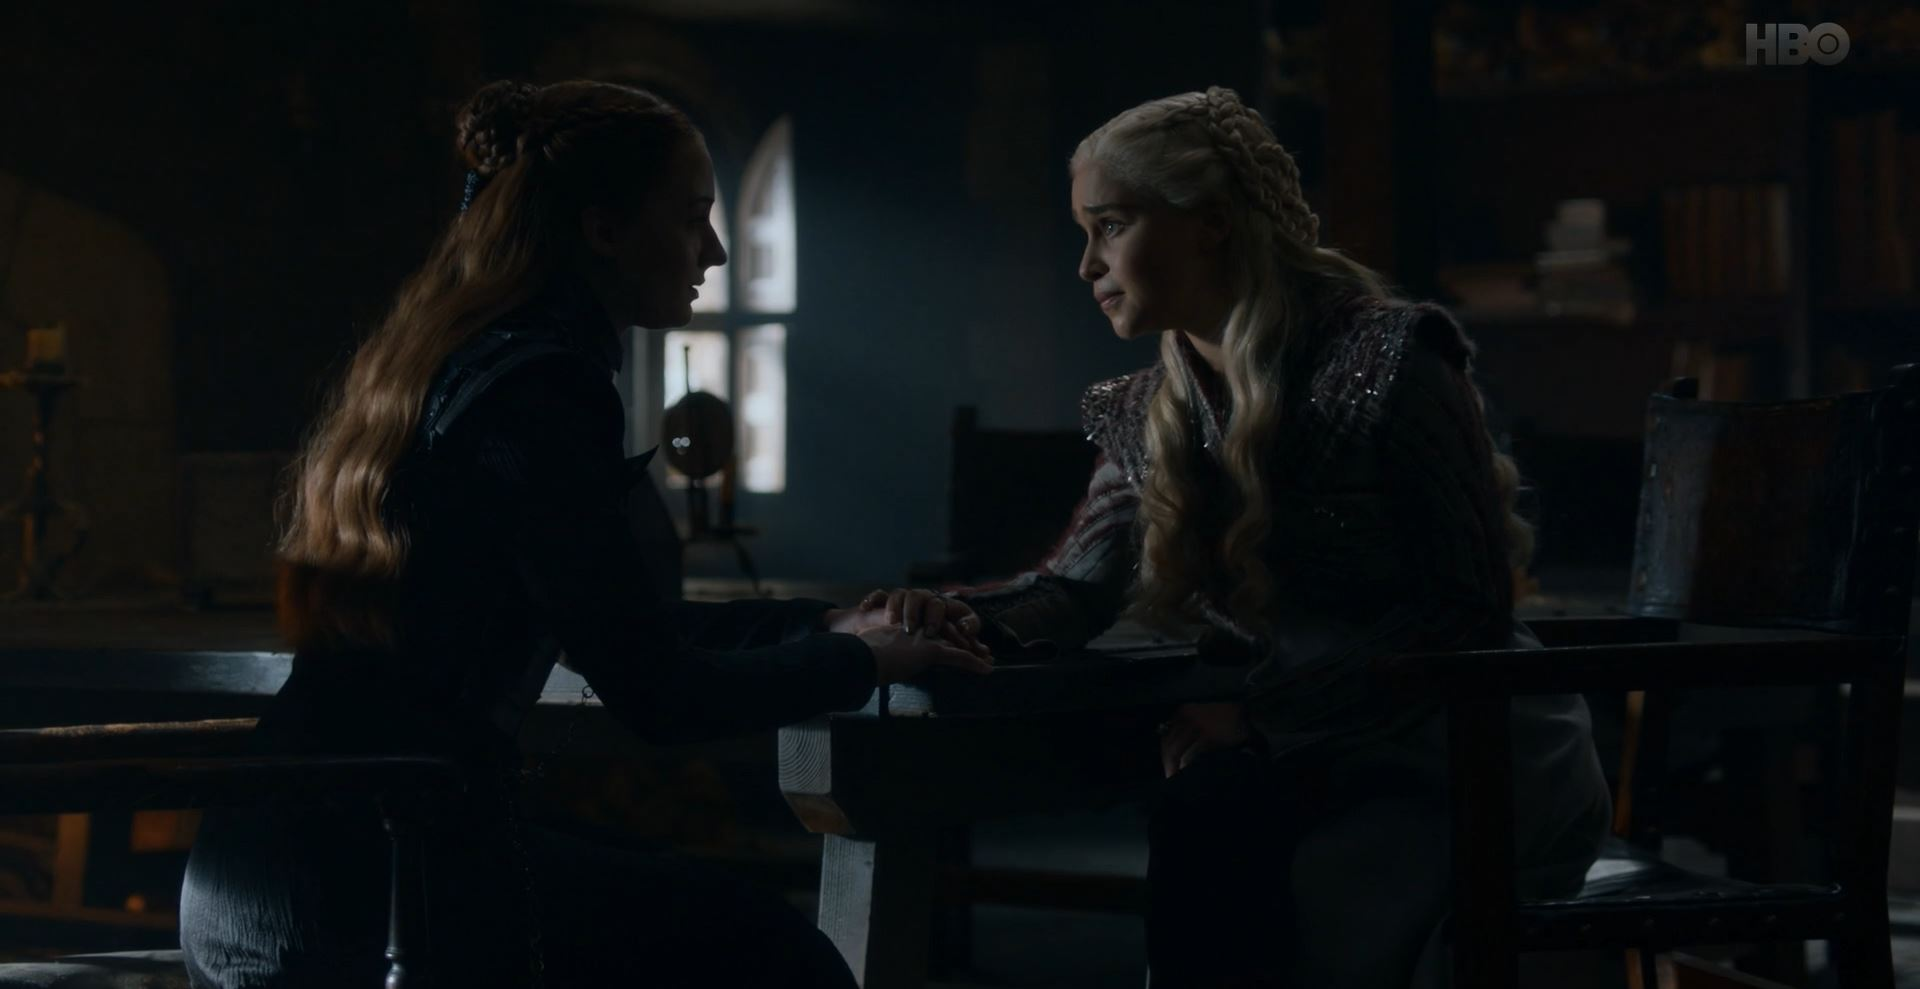 Game of Thrones S08E02 A Knight of the Seven Kingdoms Review - Sansa and Dany discuss Jon and Tyrion